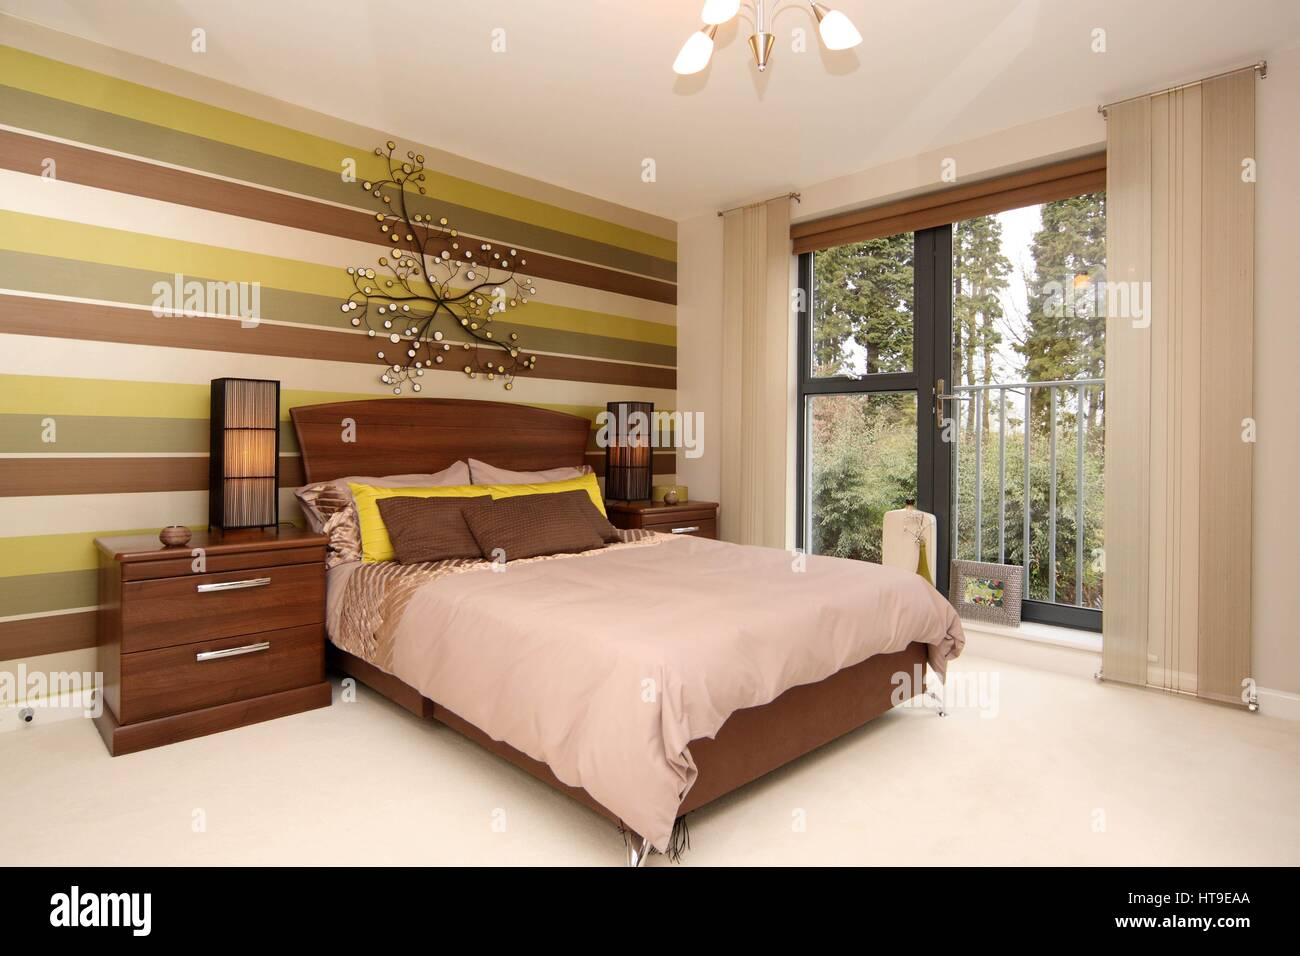 Bedroom Feature Wall Home Interior Bedroom Feature Wall Room With A View Juliet